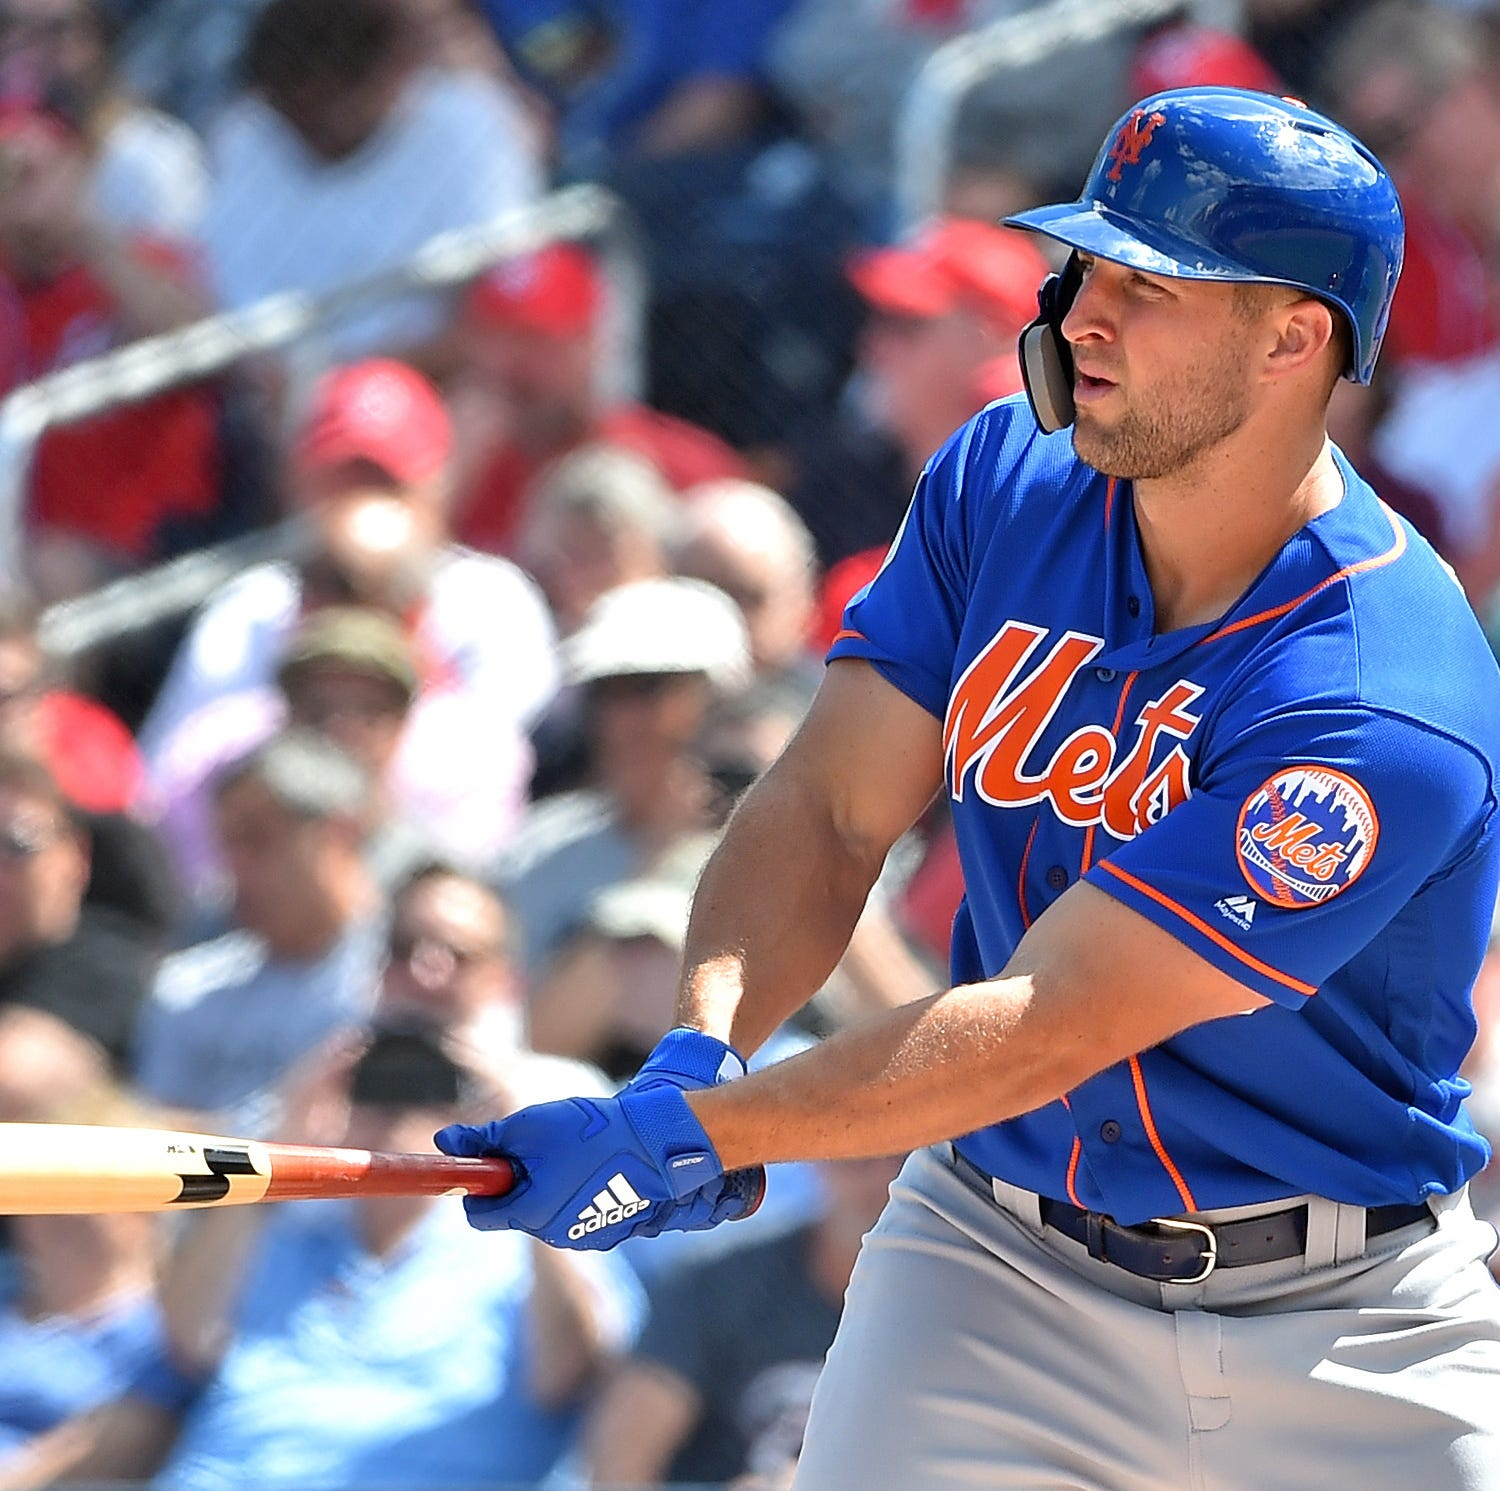 Tim Tebow is coming to town. The former Gator and Heisman winner plays at JetBlue Park on Saturday.